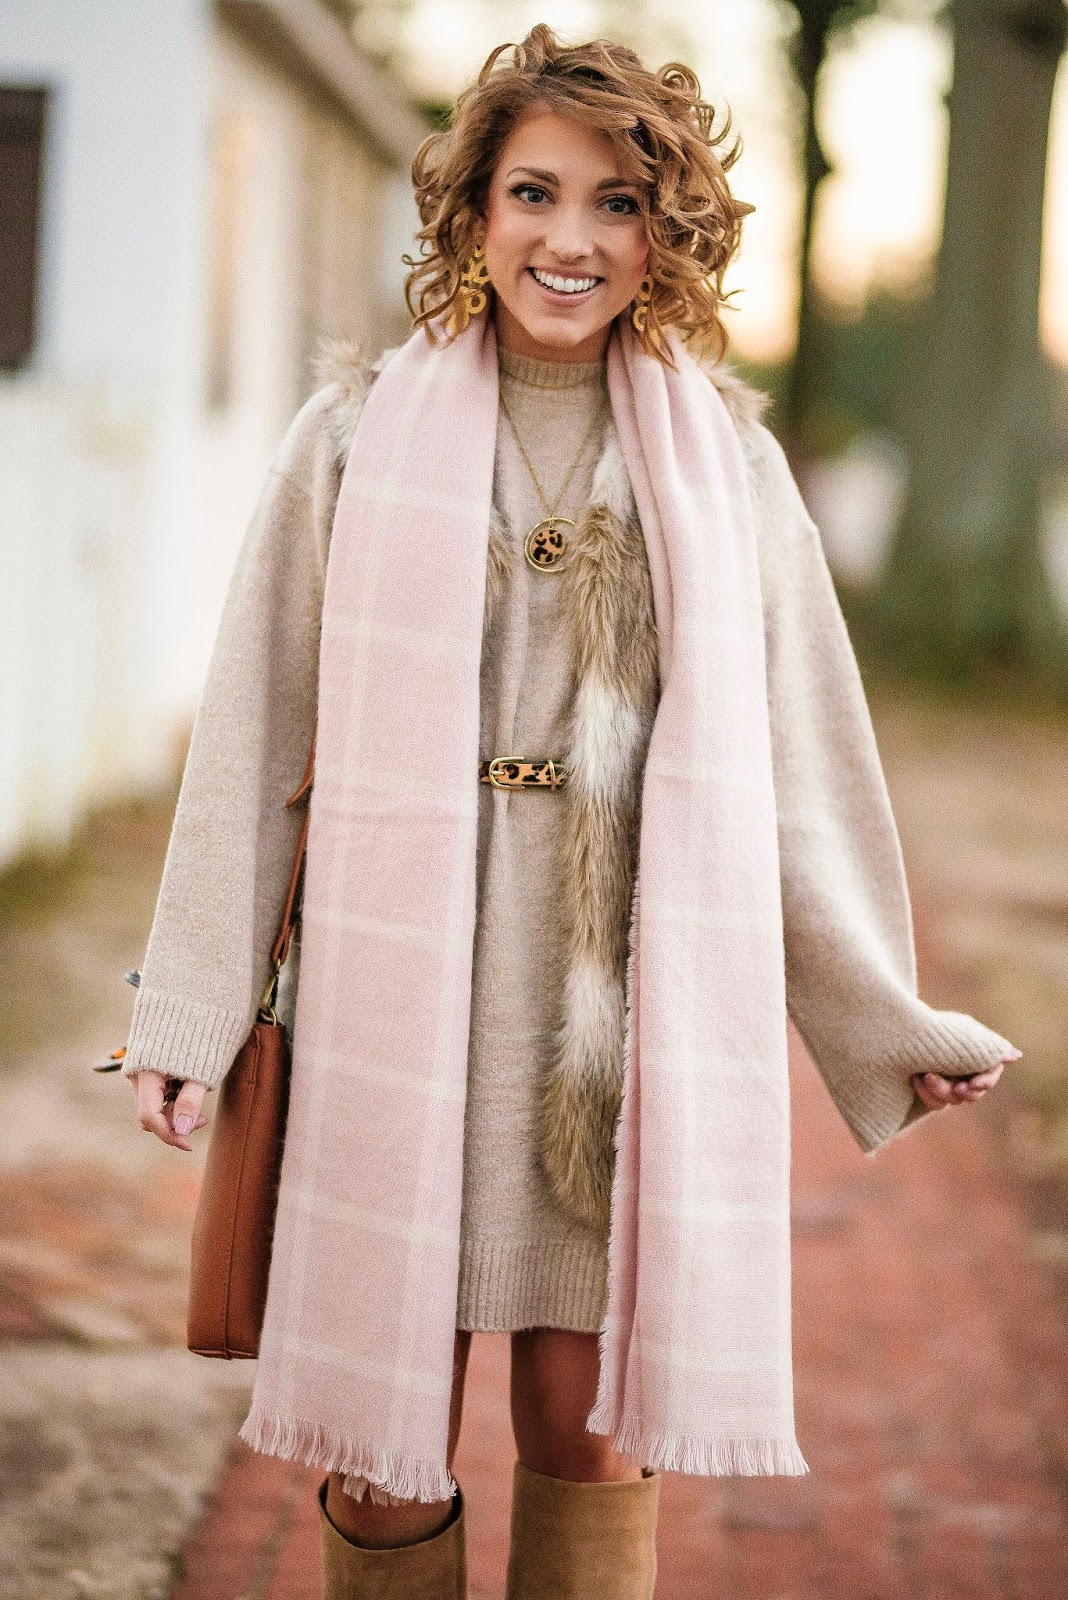 Baby Pink and Faux Fur - Something Delightful Blog